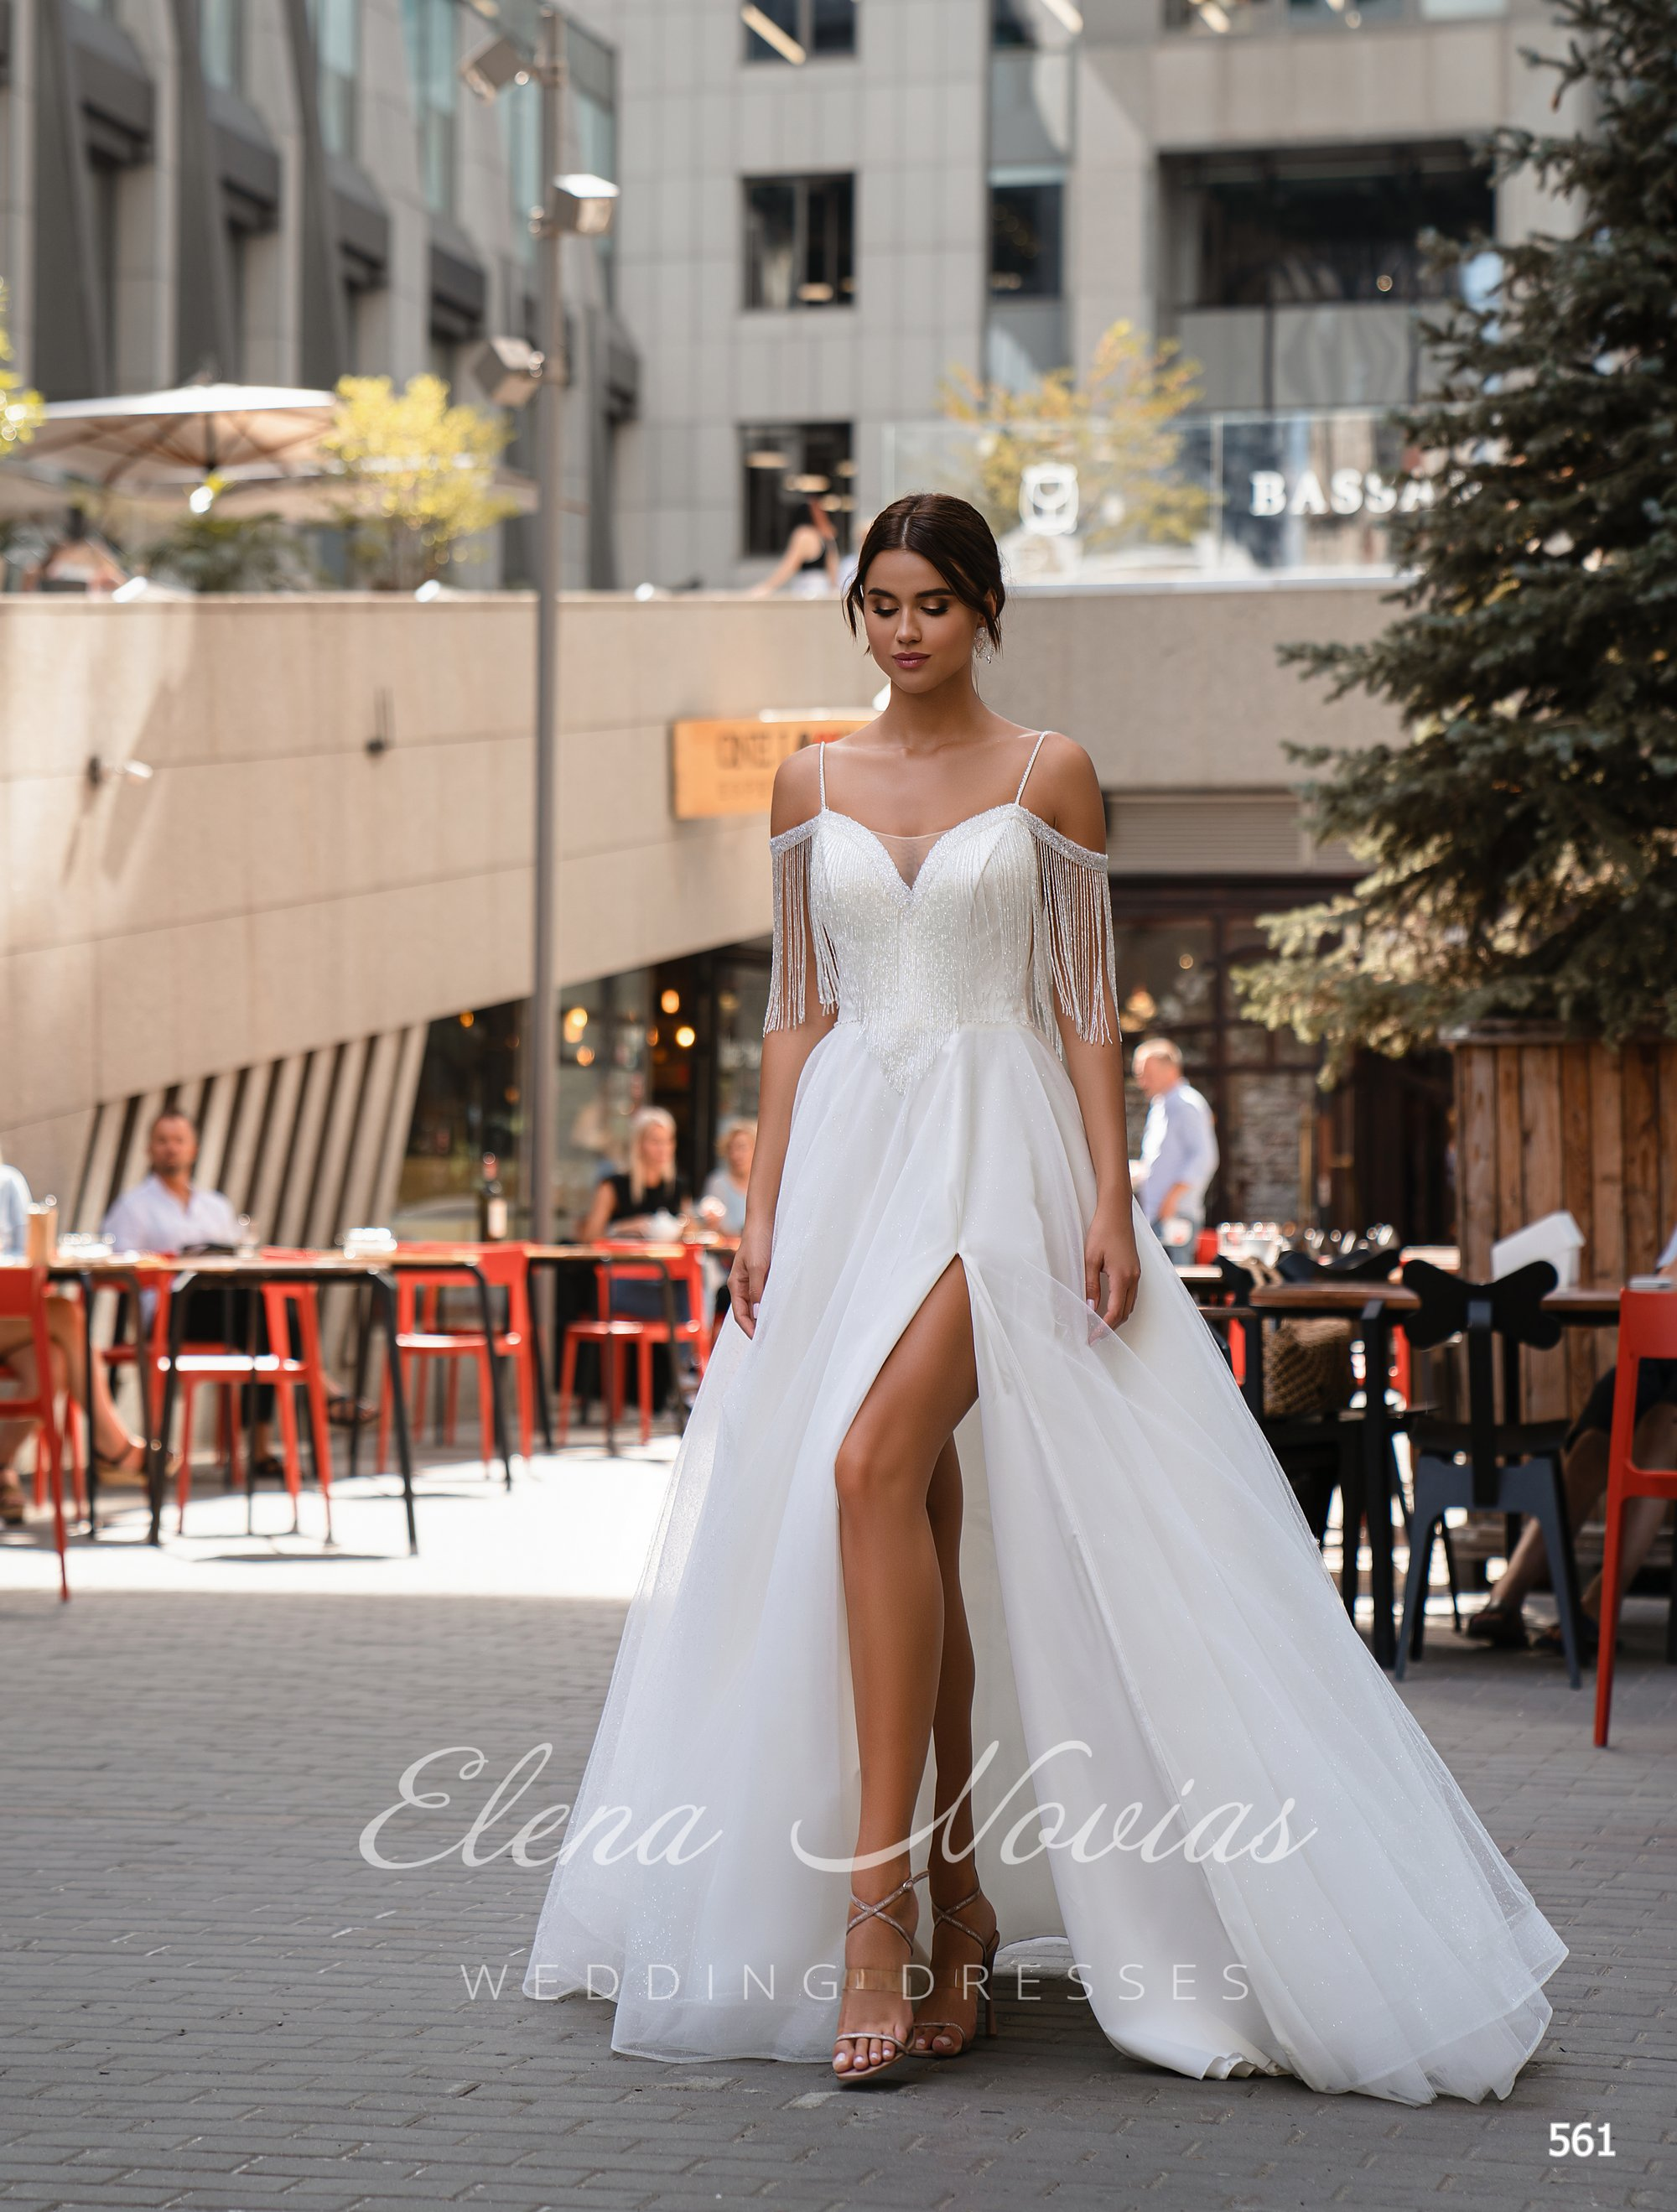 Wedding dresses 561